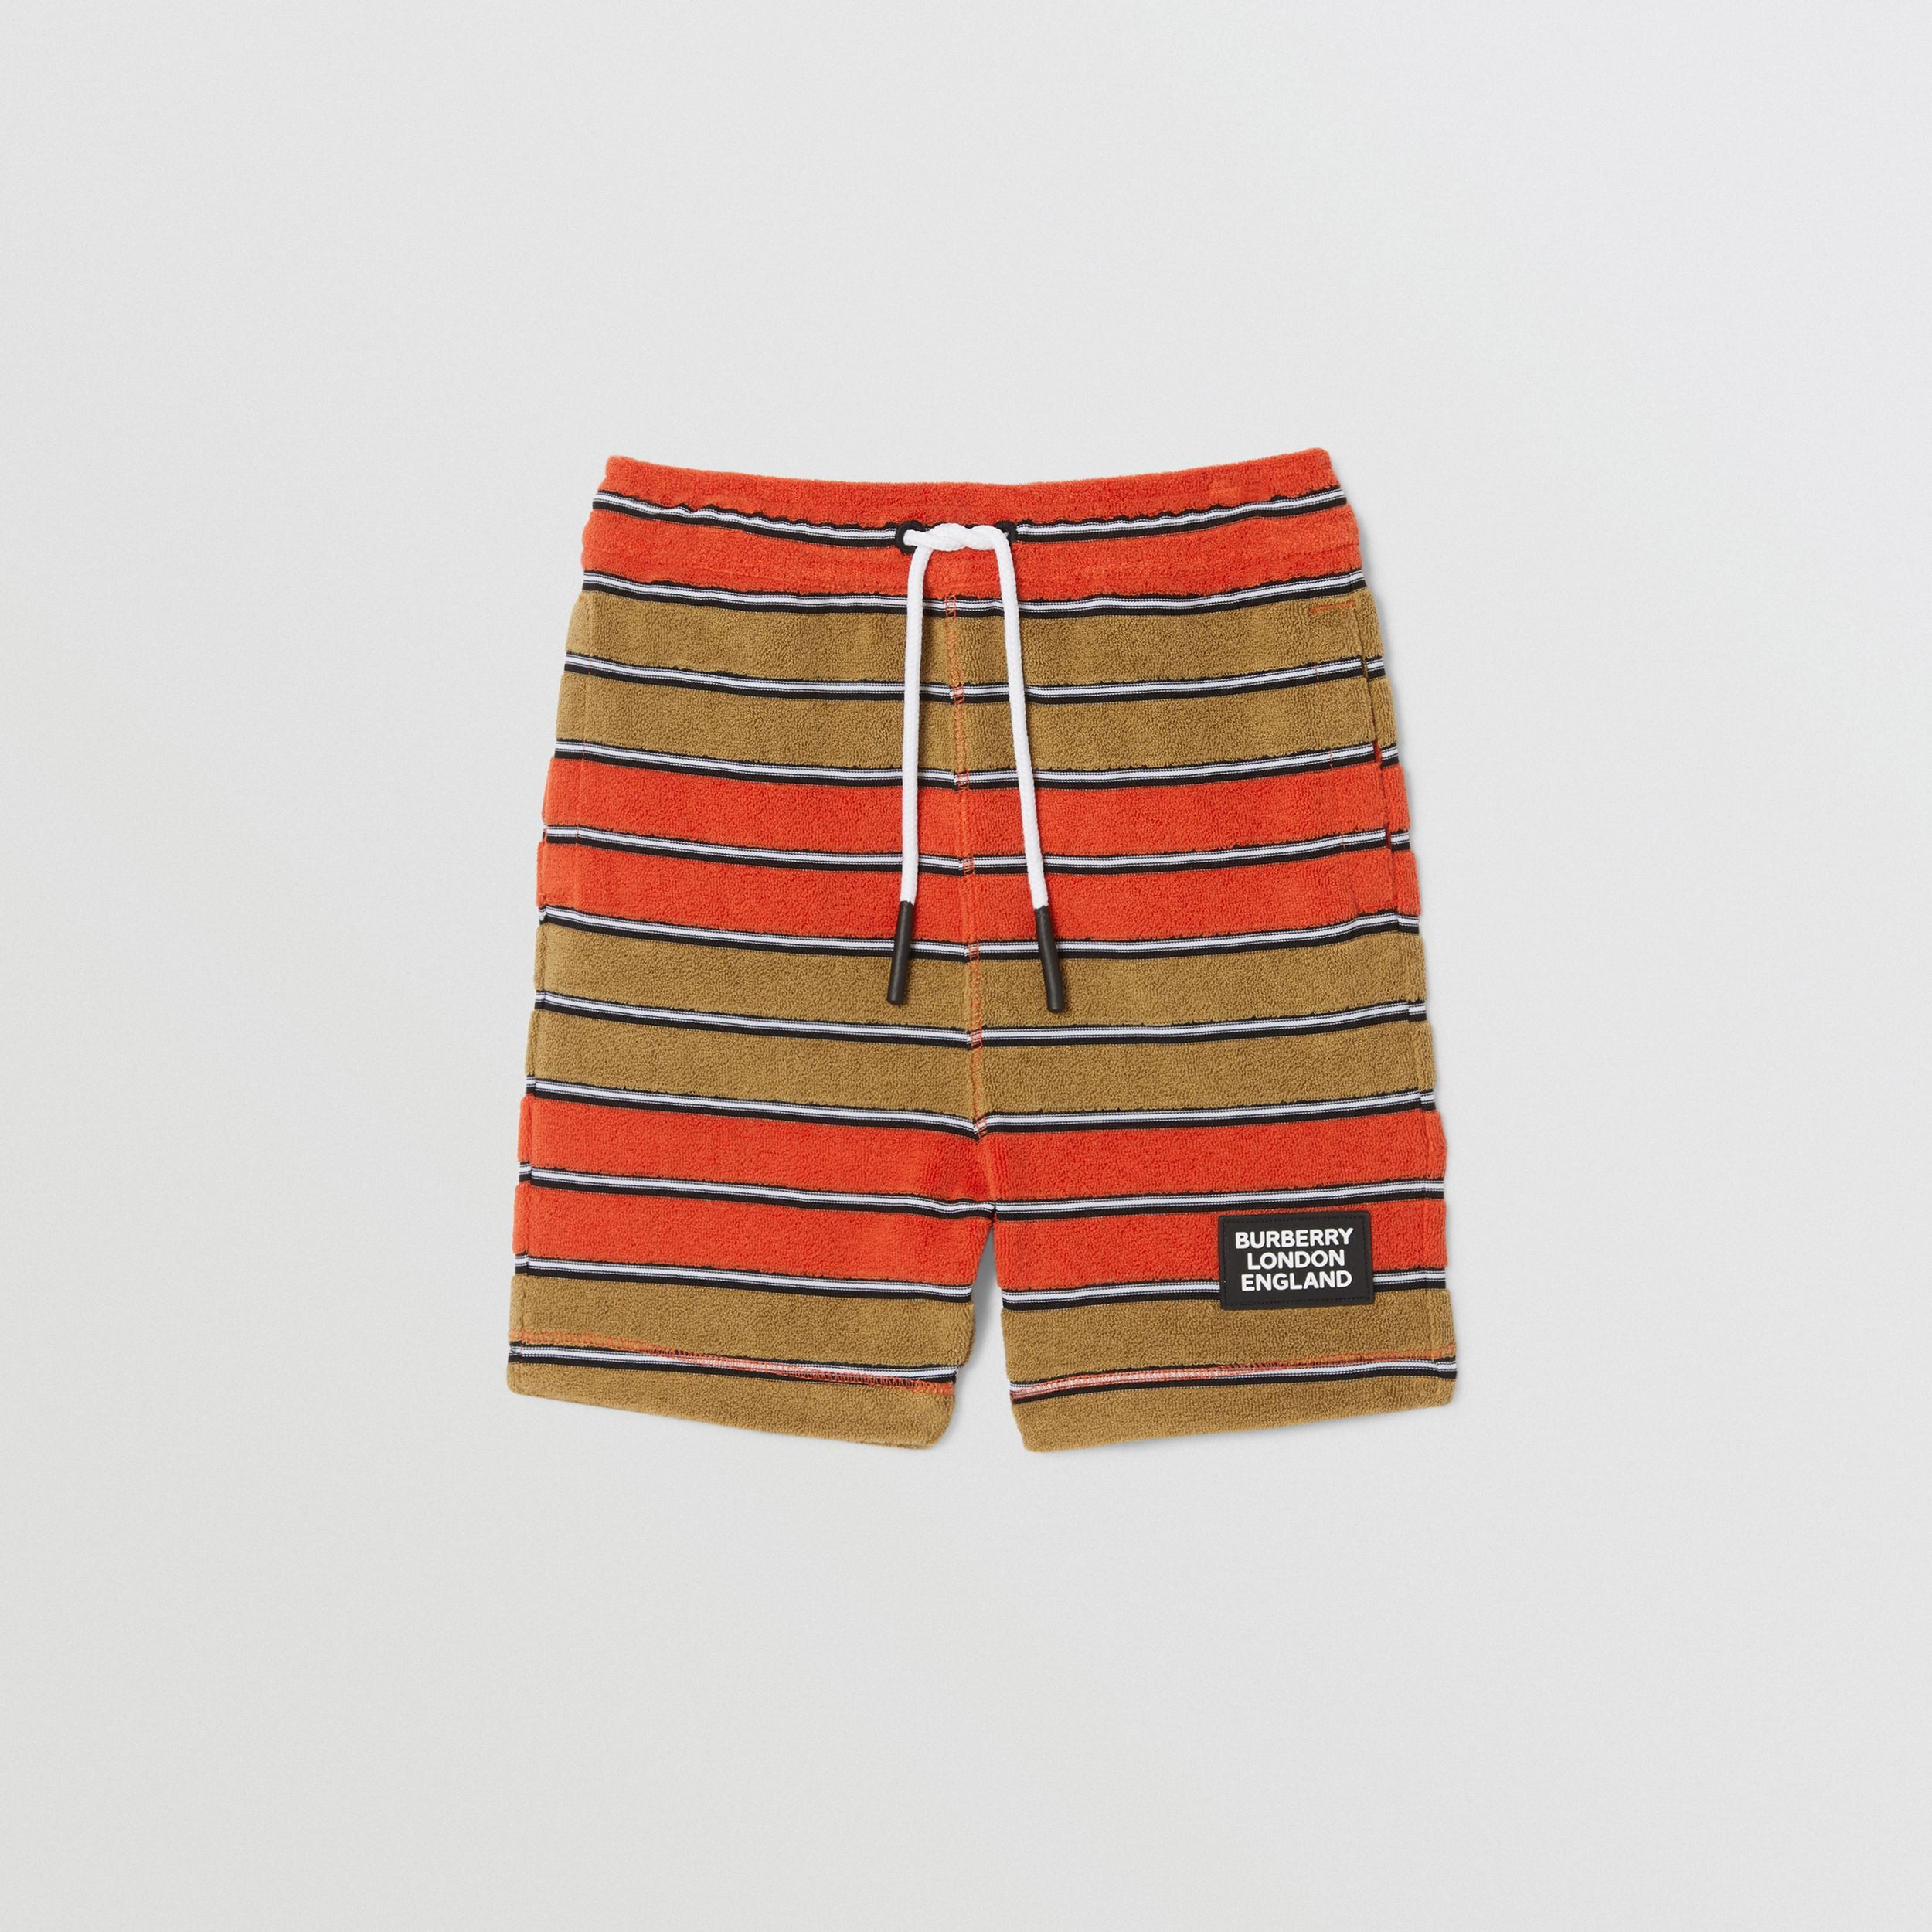 Logo Appliqué Striped Towelling Shorts in Vermilion Red - Children | Burberry - 1